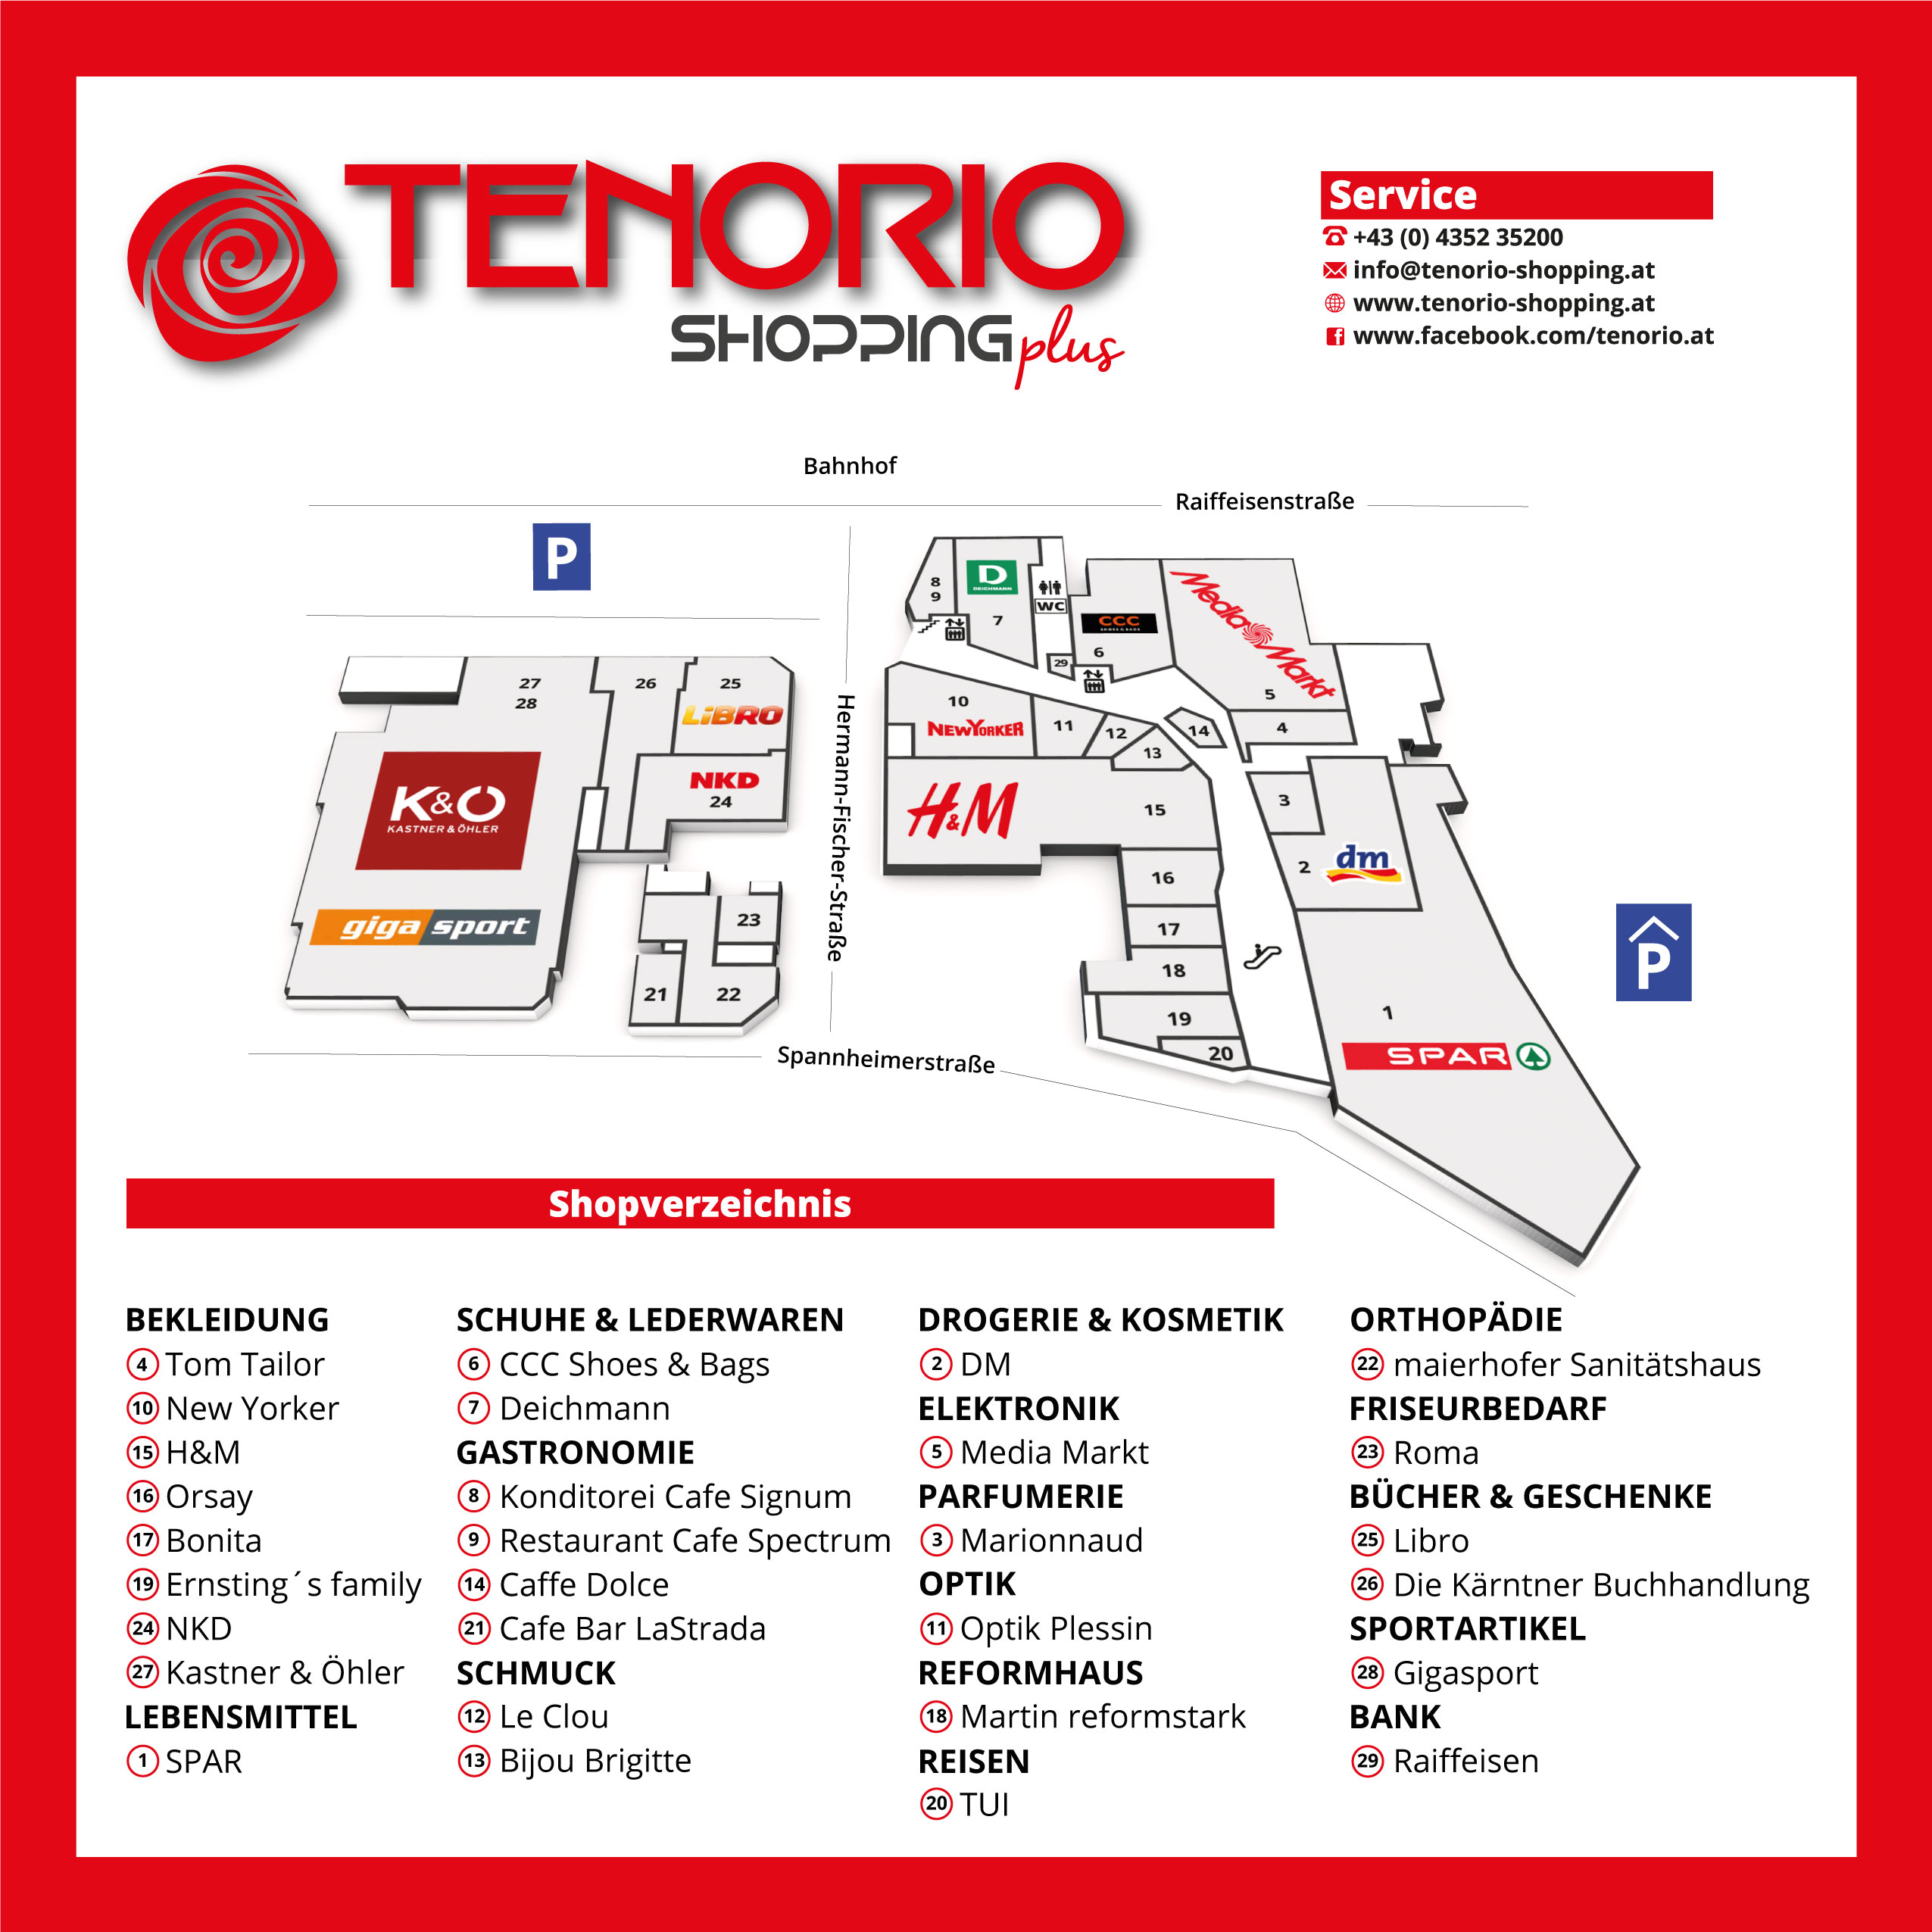 Tenorio Shopping Plus - Shopplan